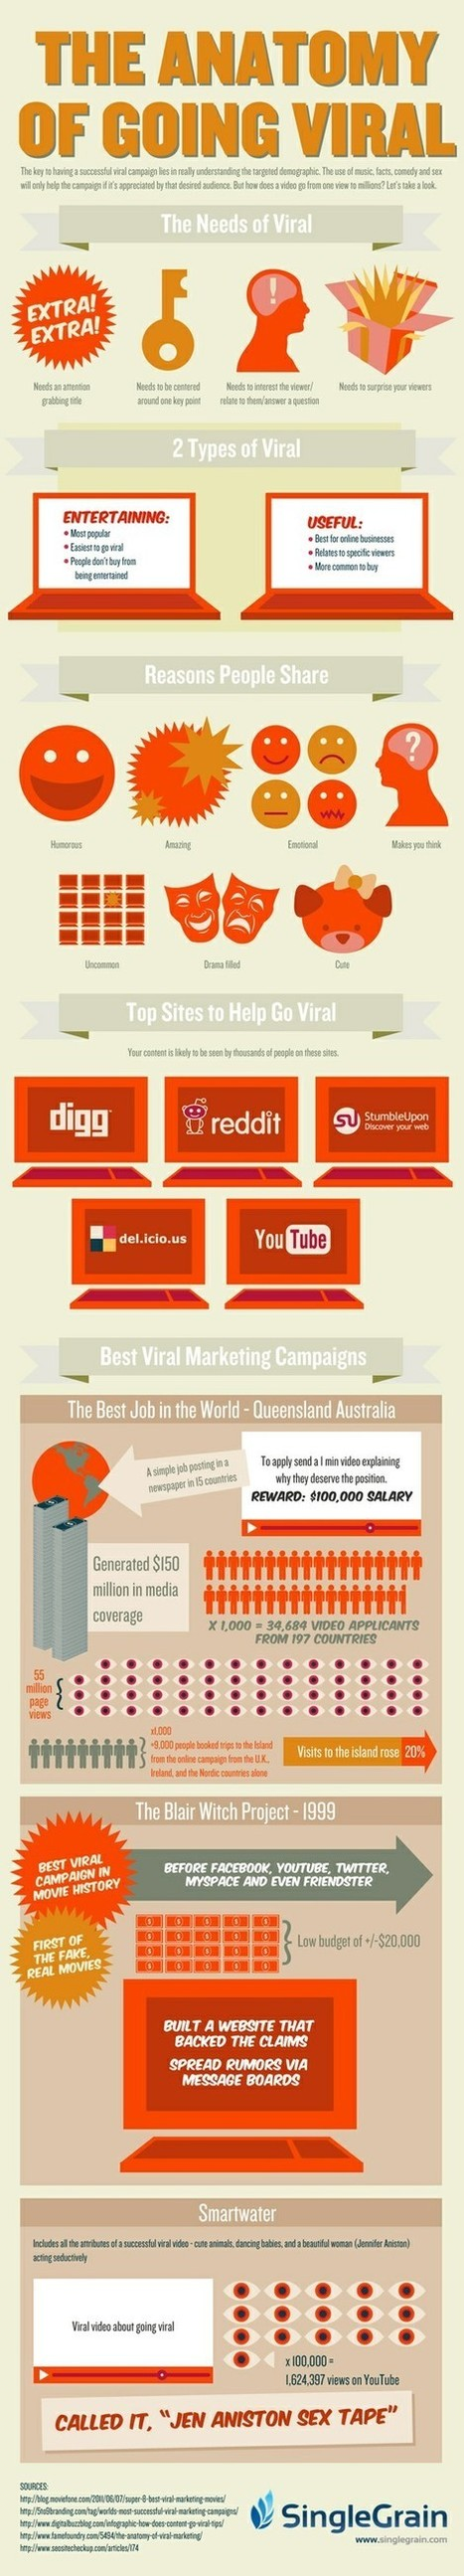 The Anatomy of Going Viral [Infographic] | Amazing Infographs | Scoop.it